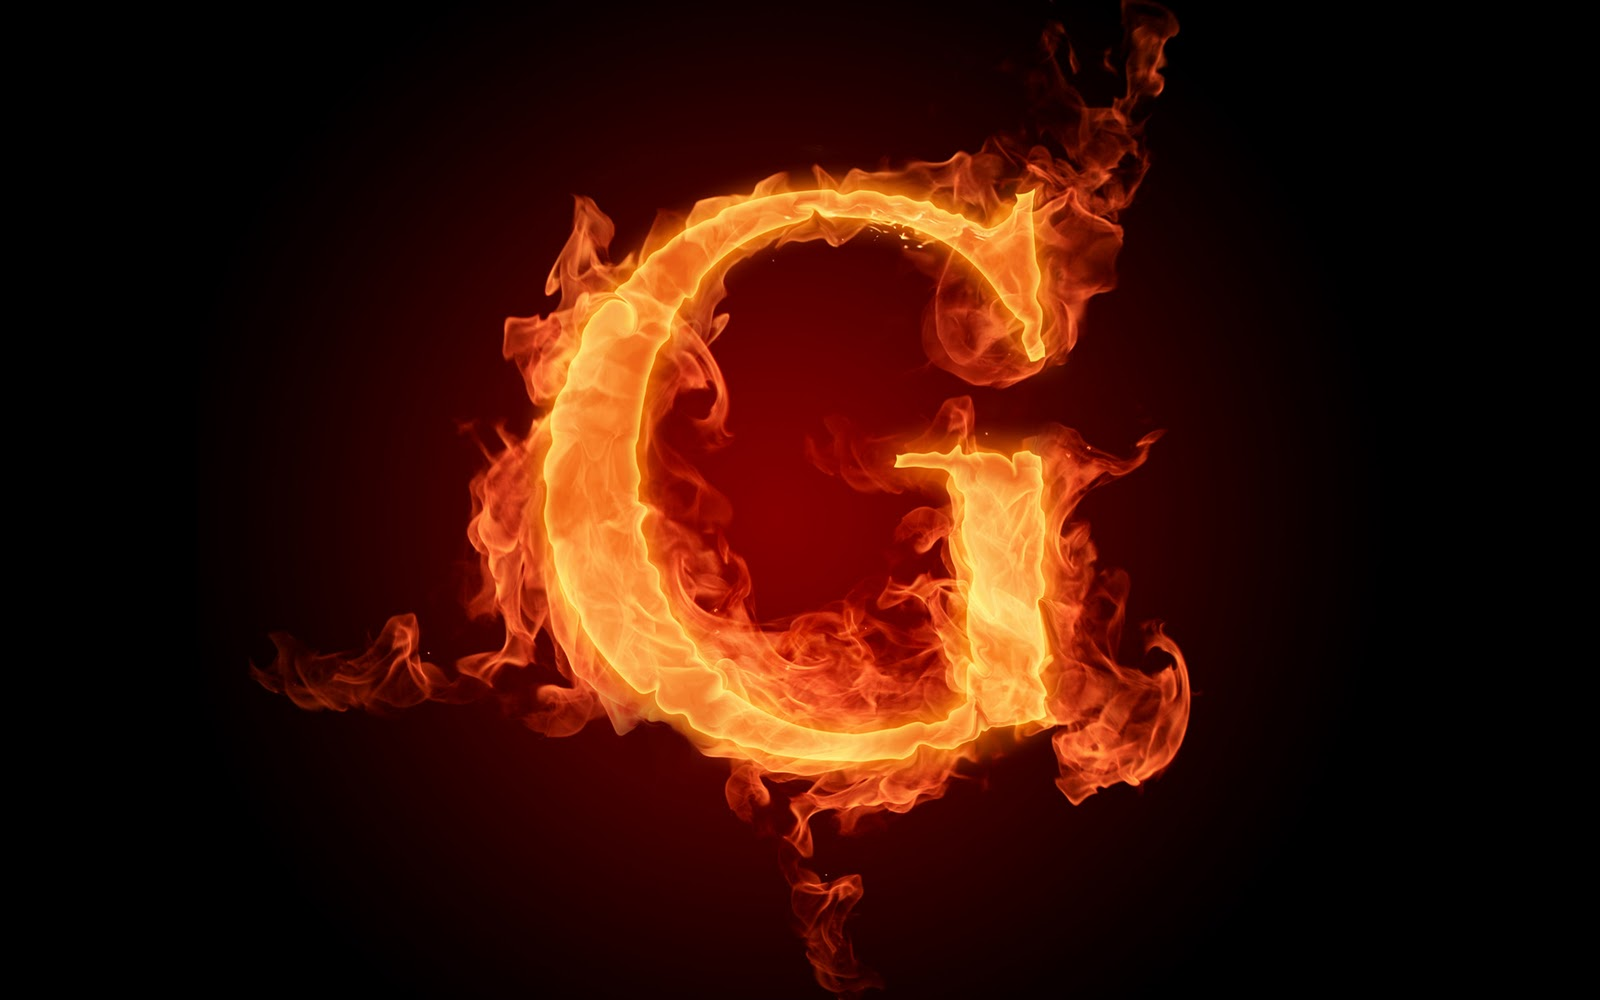 G-Alphabet wallpapers for mobile phone -mobile wallpaper - daily mobile 4 all